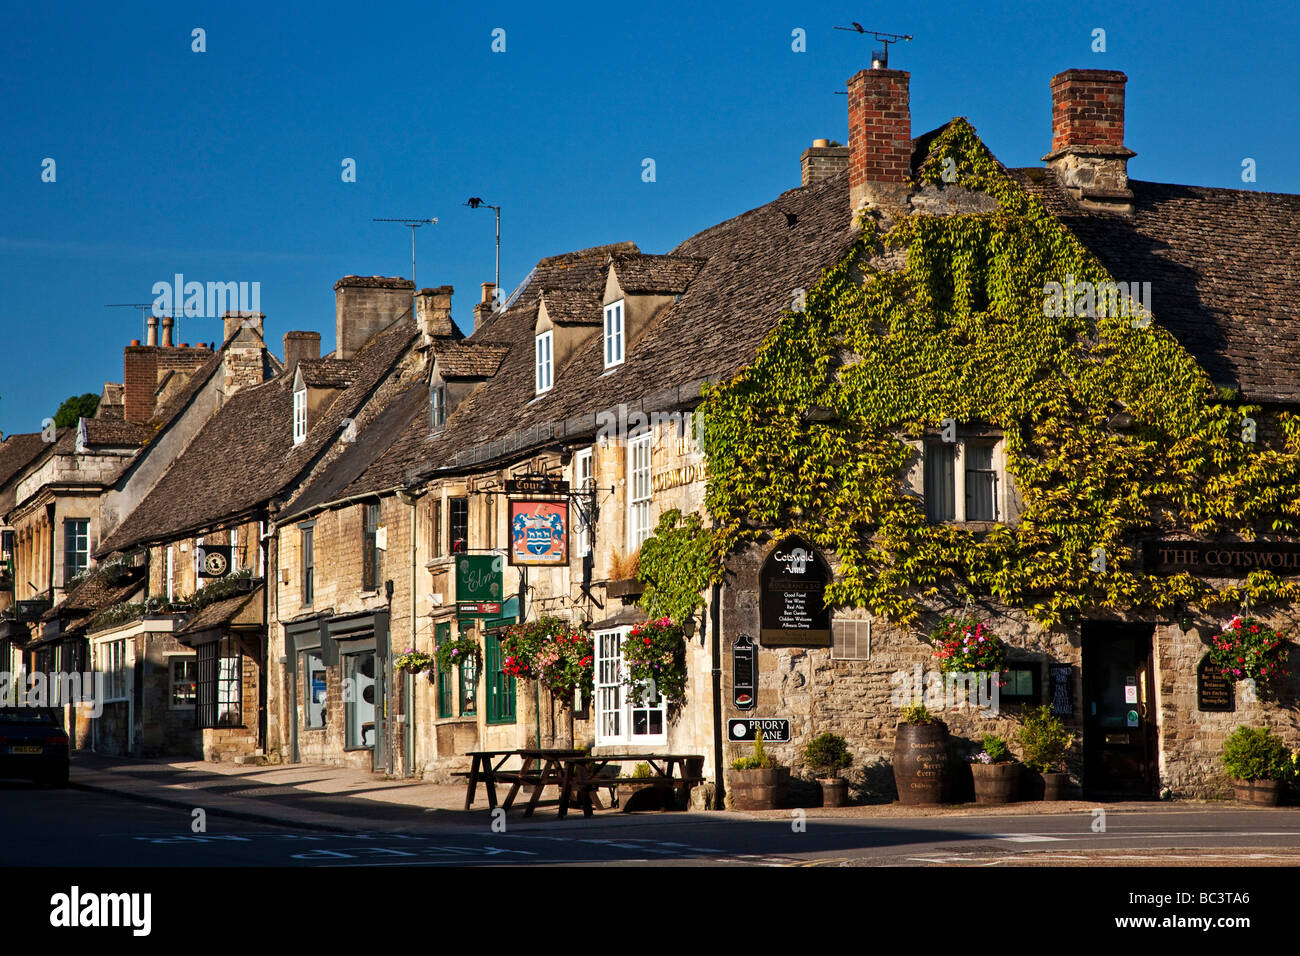 Cotswold Arms High Street Burford Oxfordshire in the Cotswolds - Stock Image